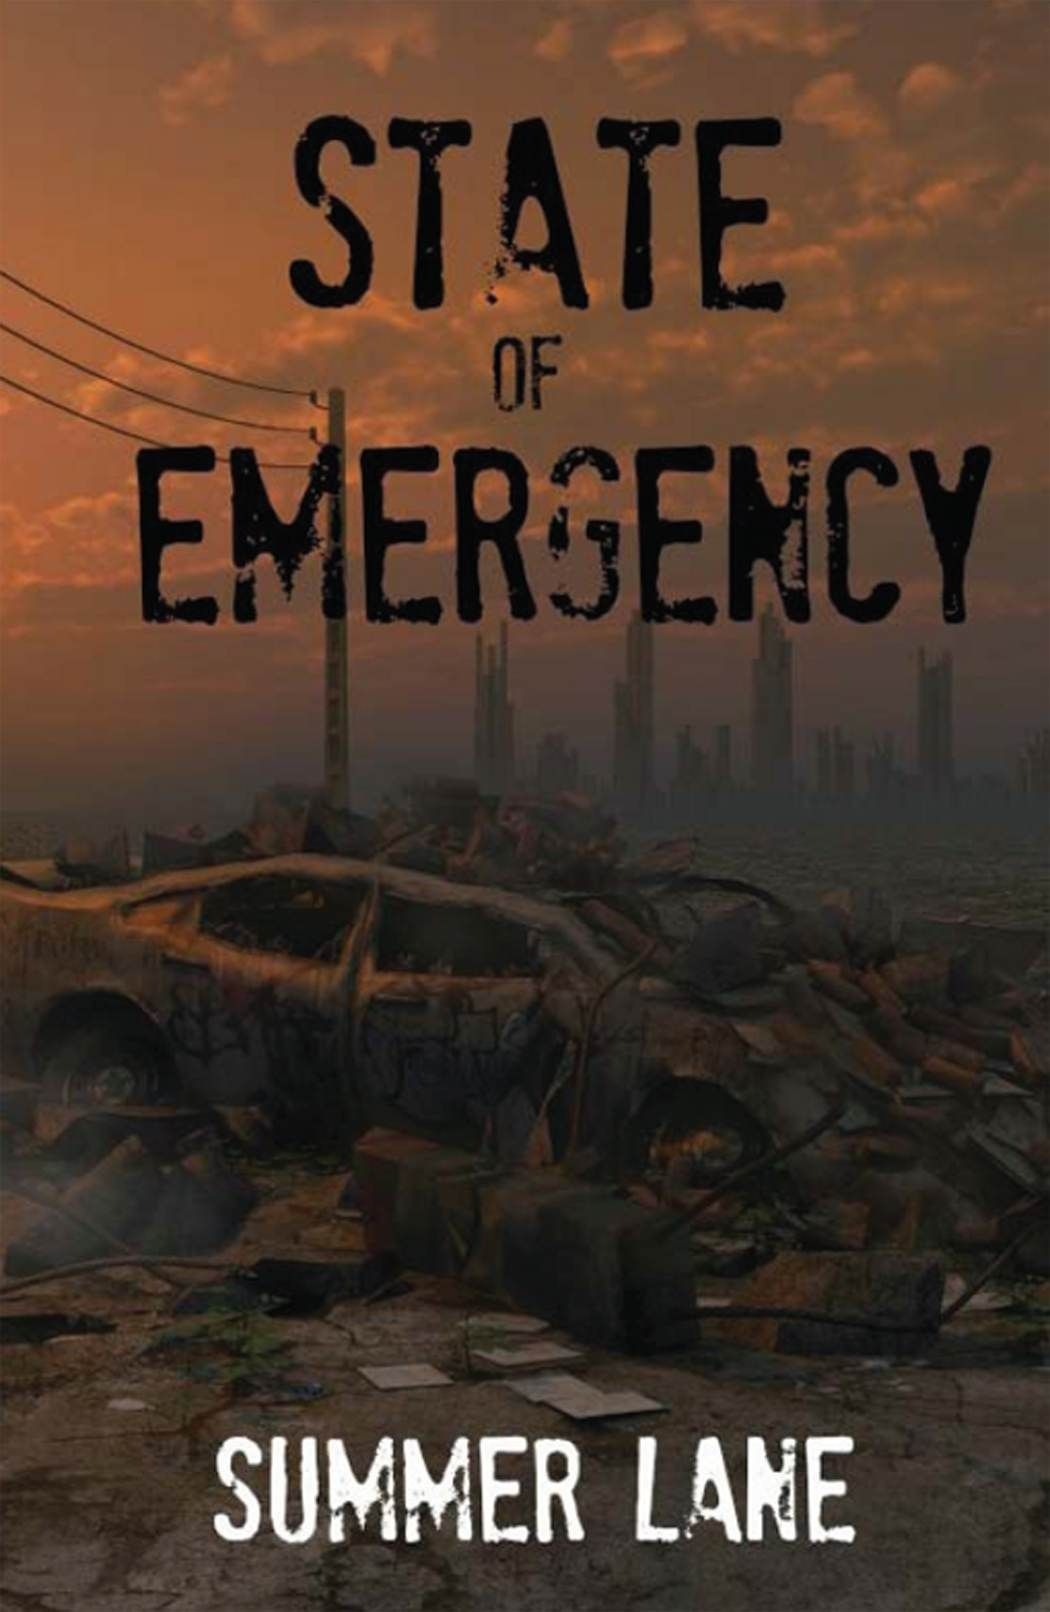 18+ State of emergency singapore book ideas